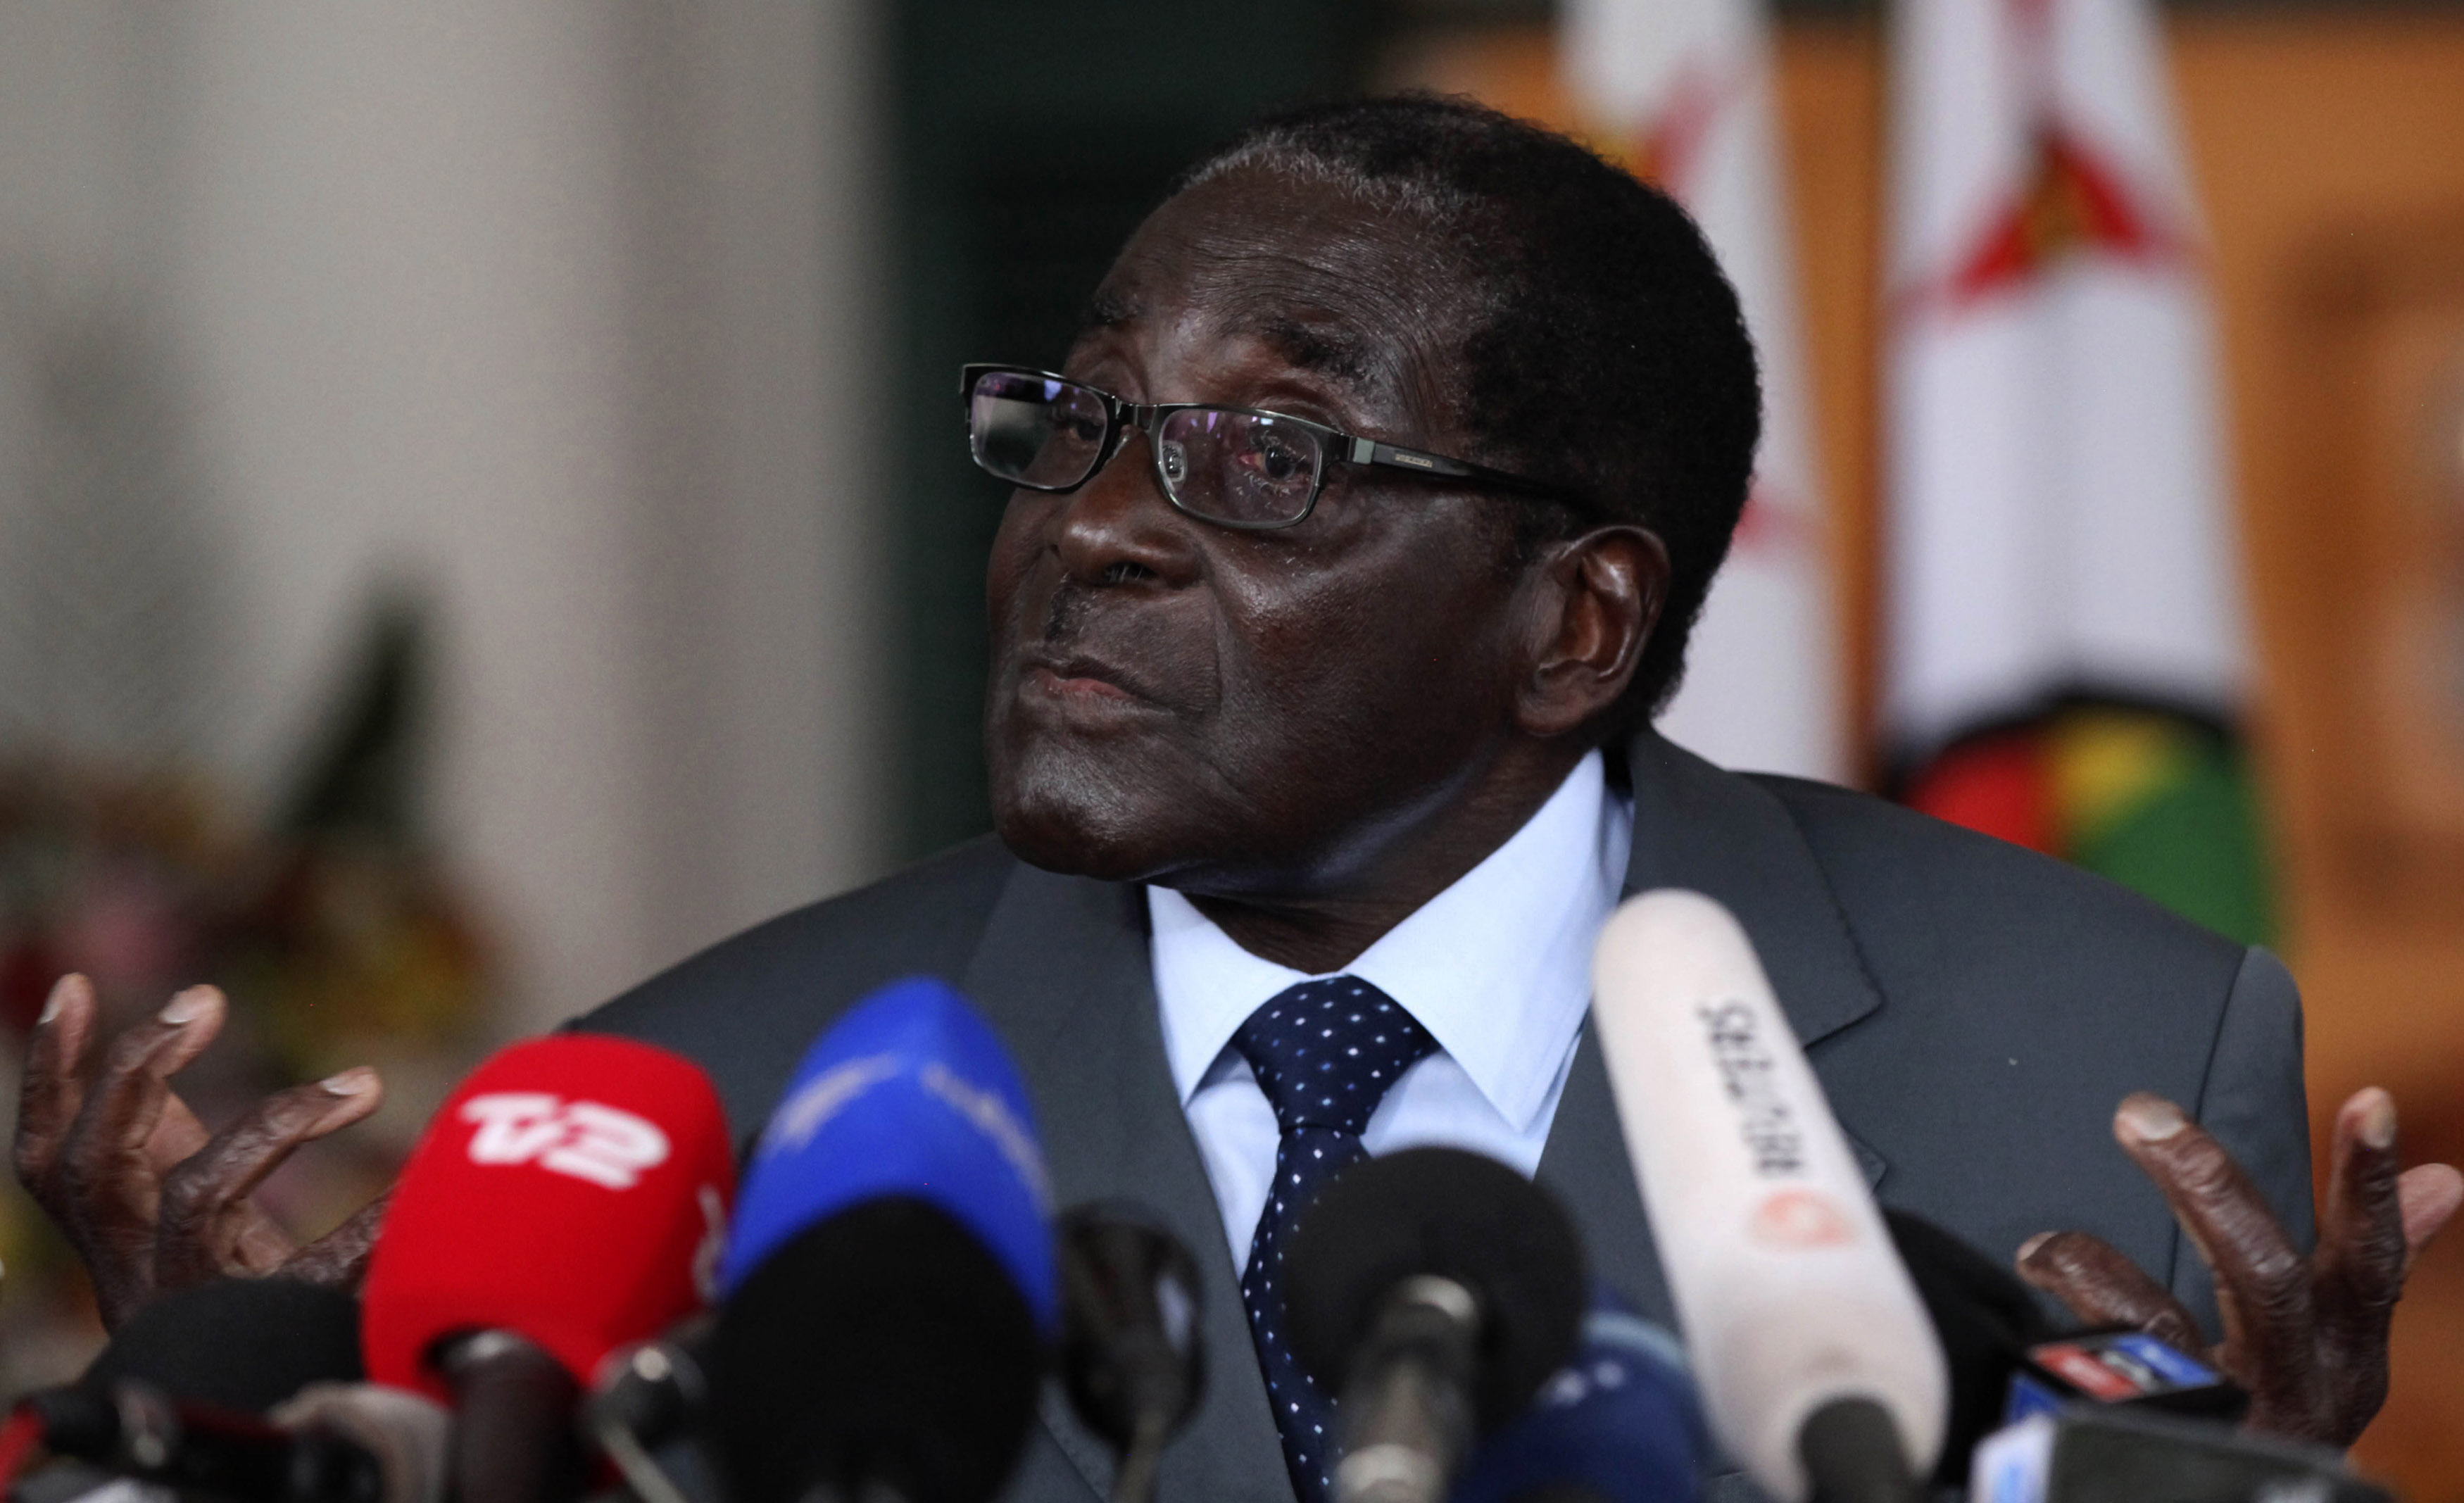 Zimbabwe's President Robert Mugabe addresses a media conference at State house in Harare, on the eve of the country's general elections, July 30, 2013. Heavily armed riot police deployed in potential election flashpoints in Zimbabwe on Tuesday on the eve of a poll showdown between Mugabe and Prime Minister Morgan Tsvangirai that remains too close to call.